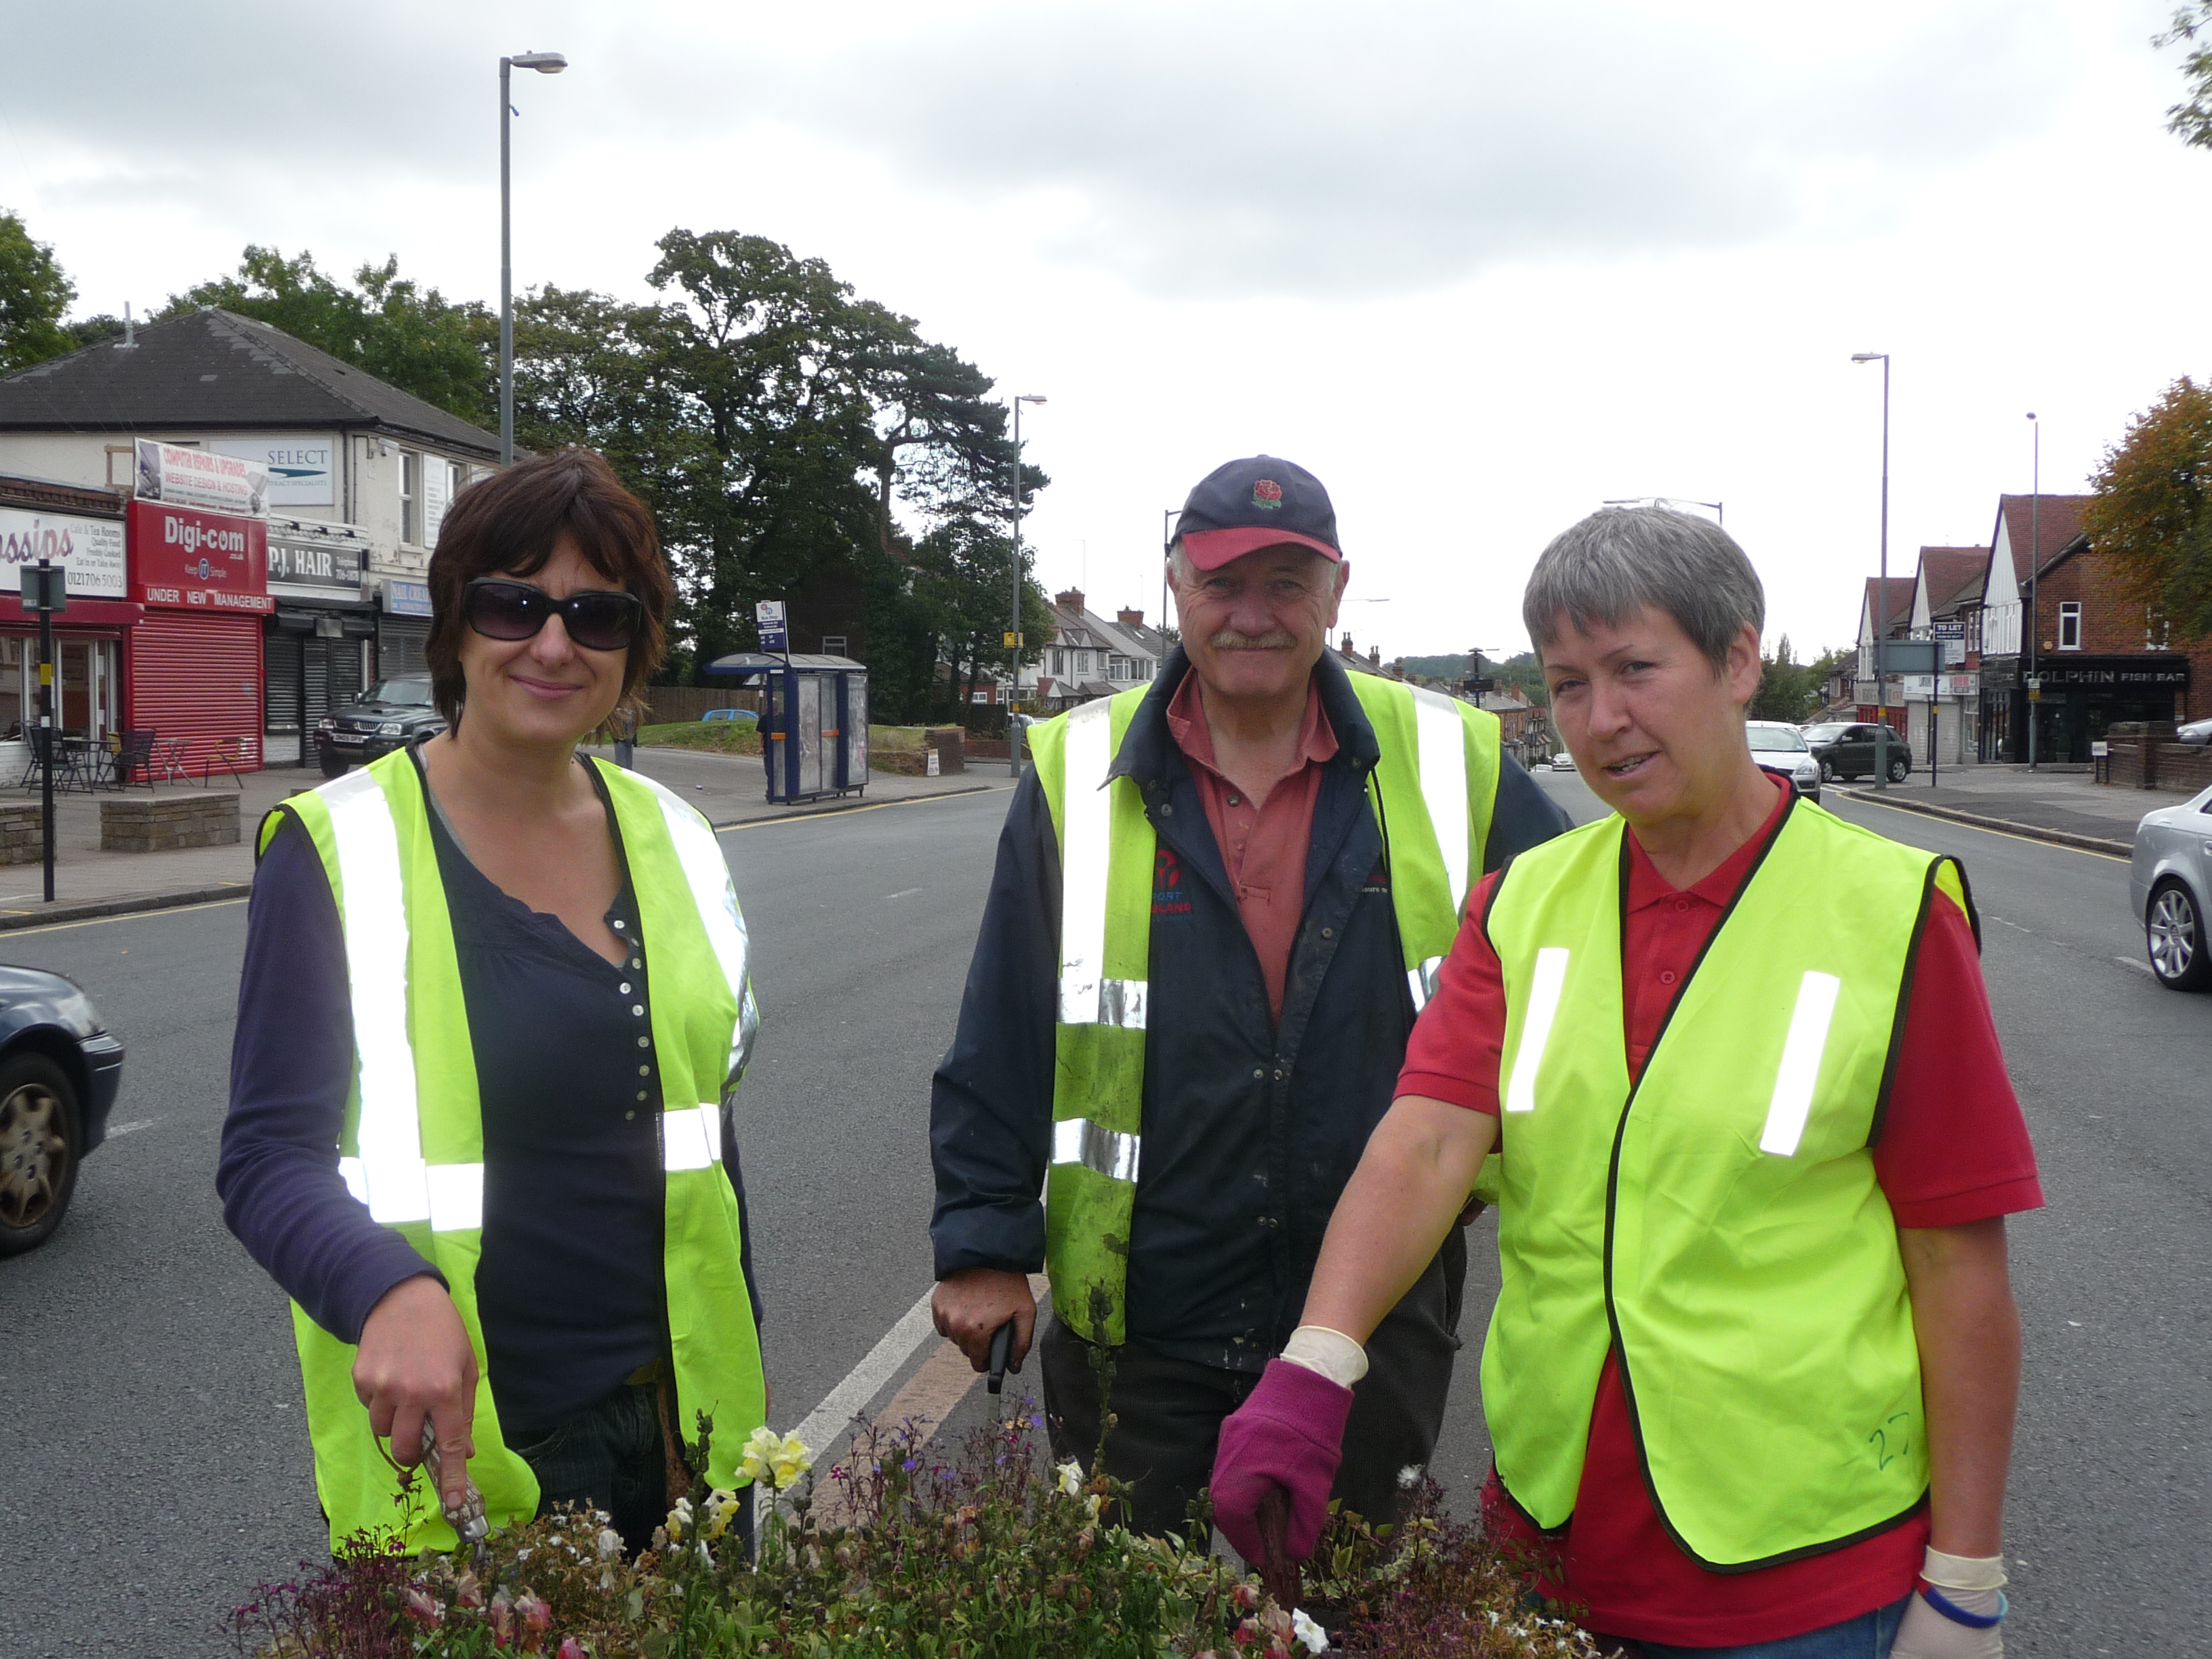 Weeding the planters on the Warwick Road, Acocks Green